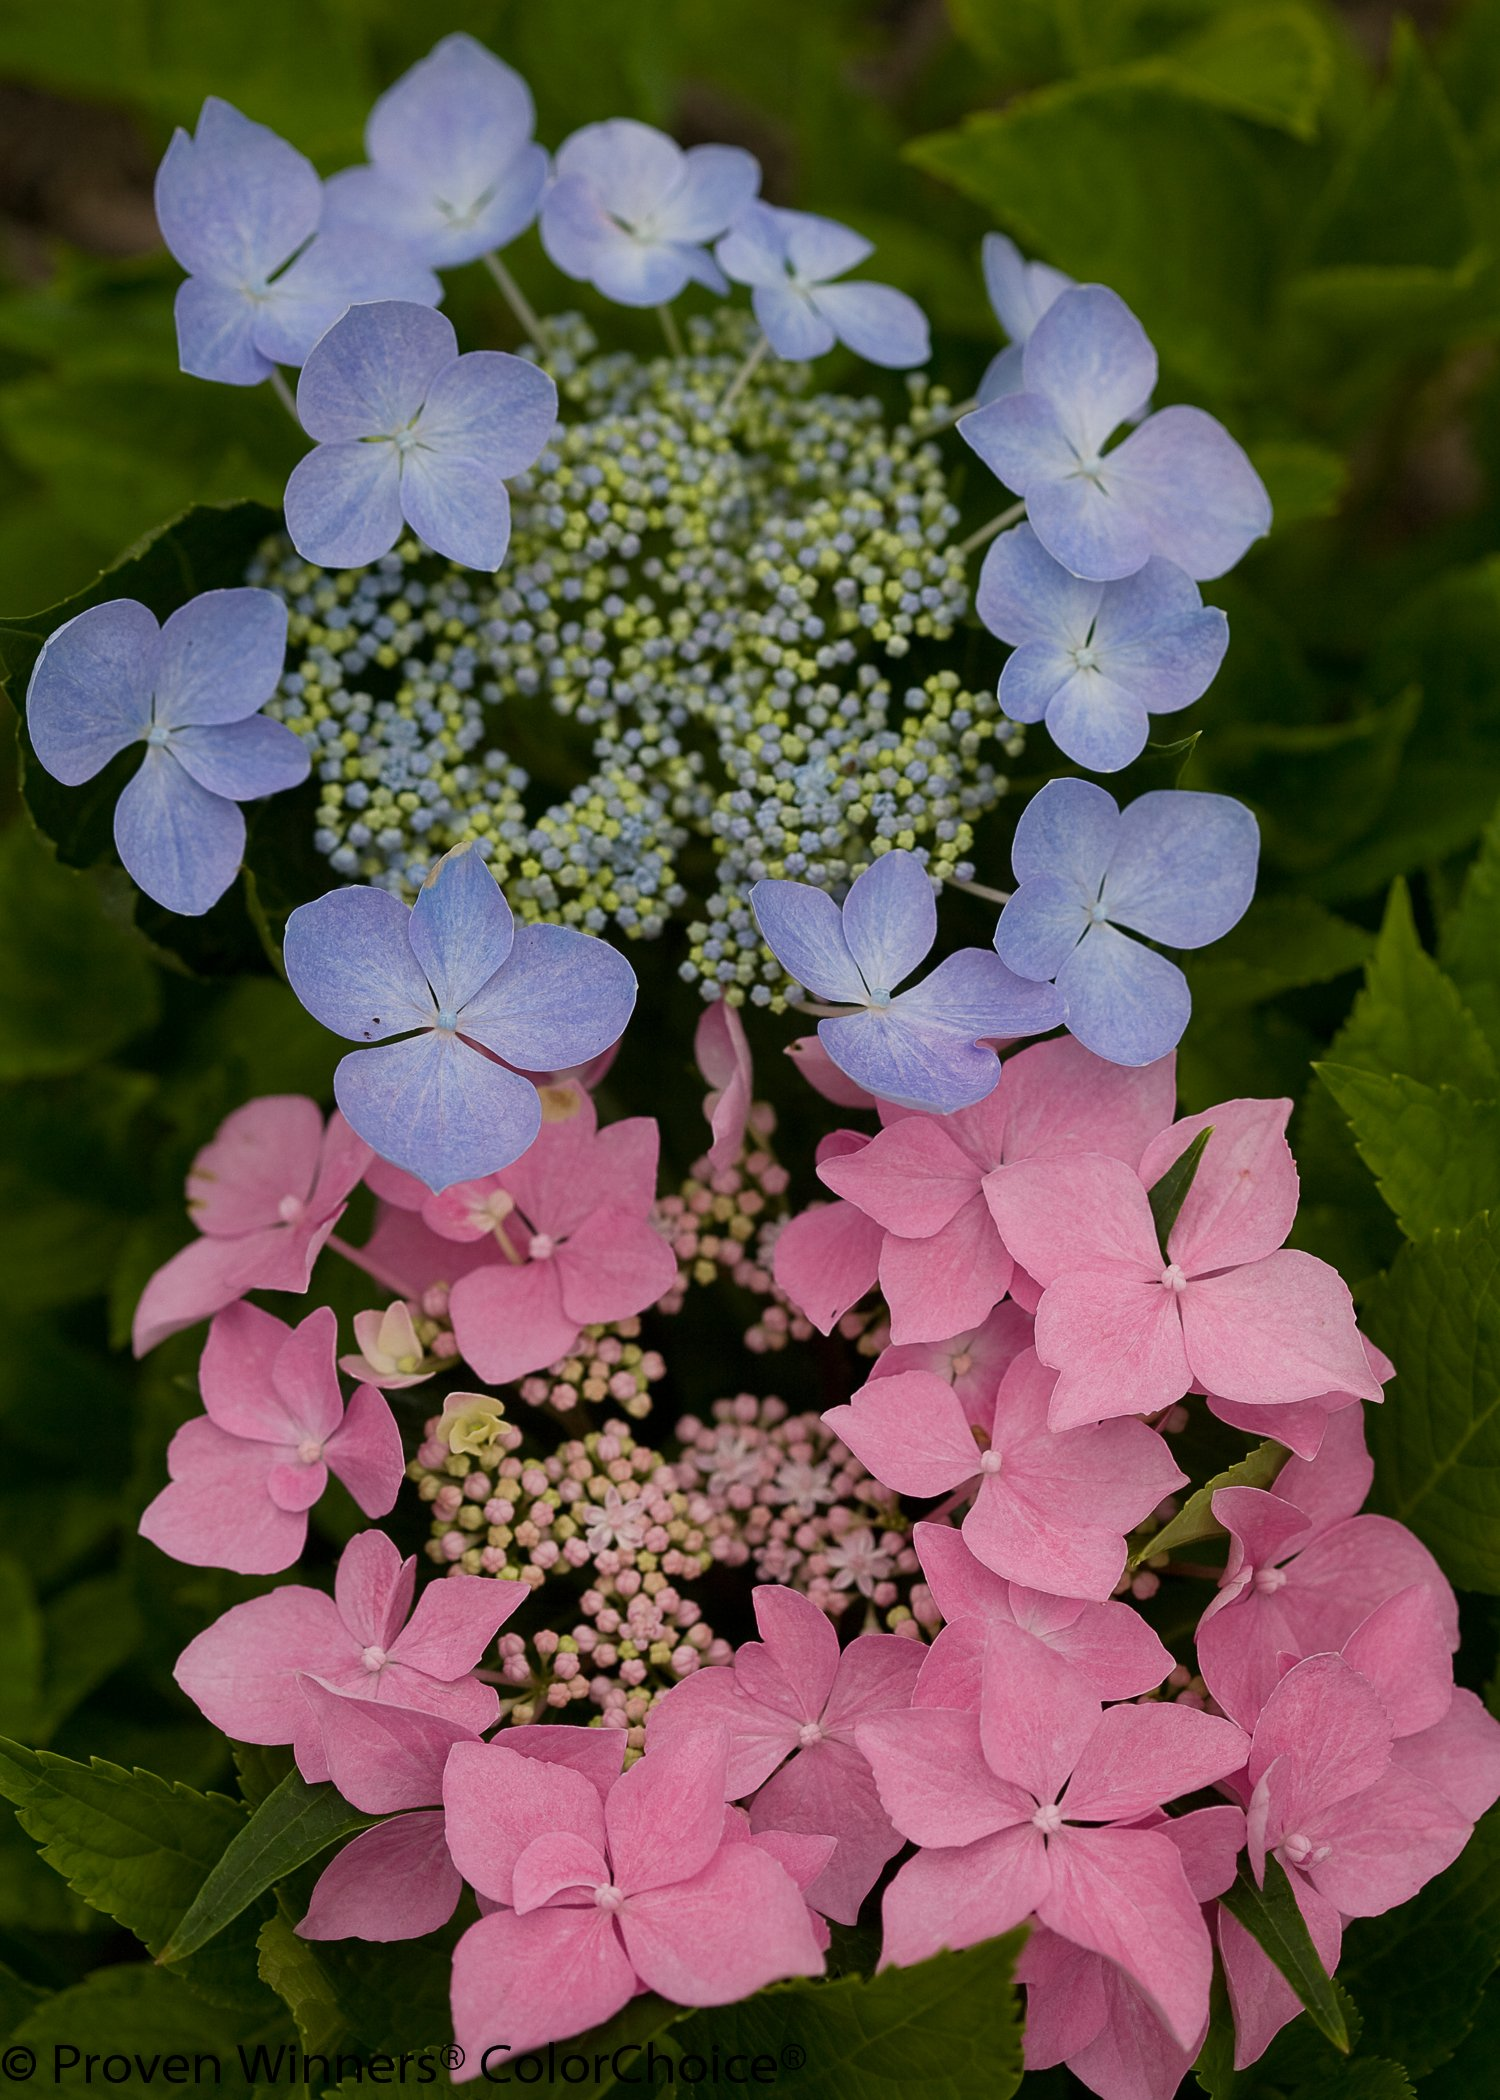 1 Gal. Let's Dance Starlight Bigleaf Hydrangea (Macrophylla) Live Shrub, Blue or Pink Flowers by Proven Winners (Image #5)